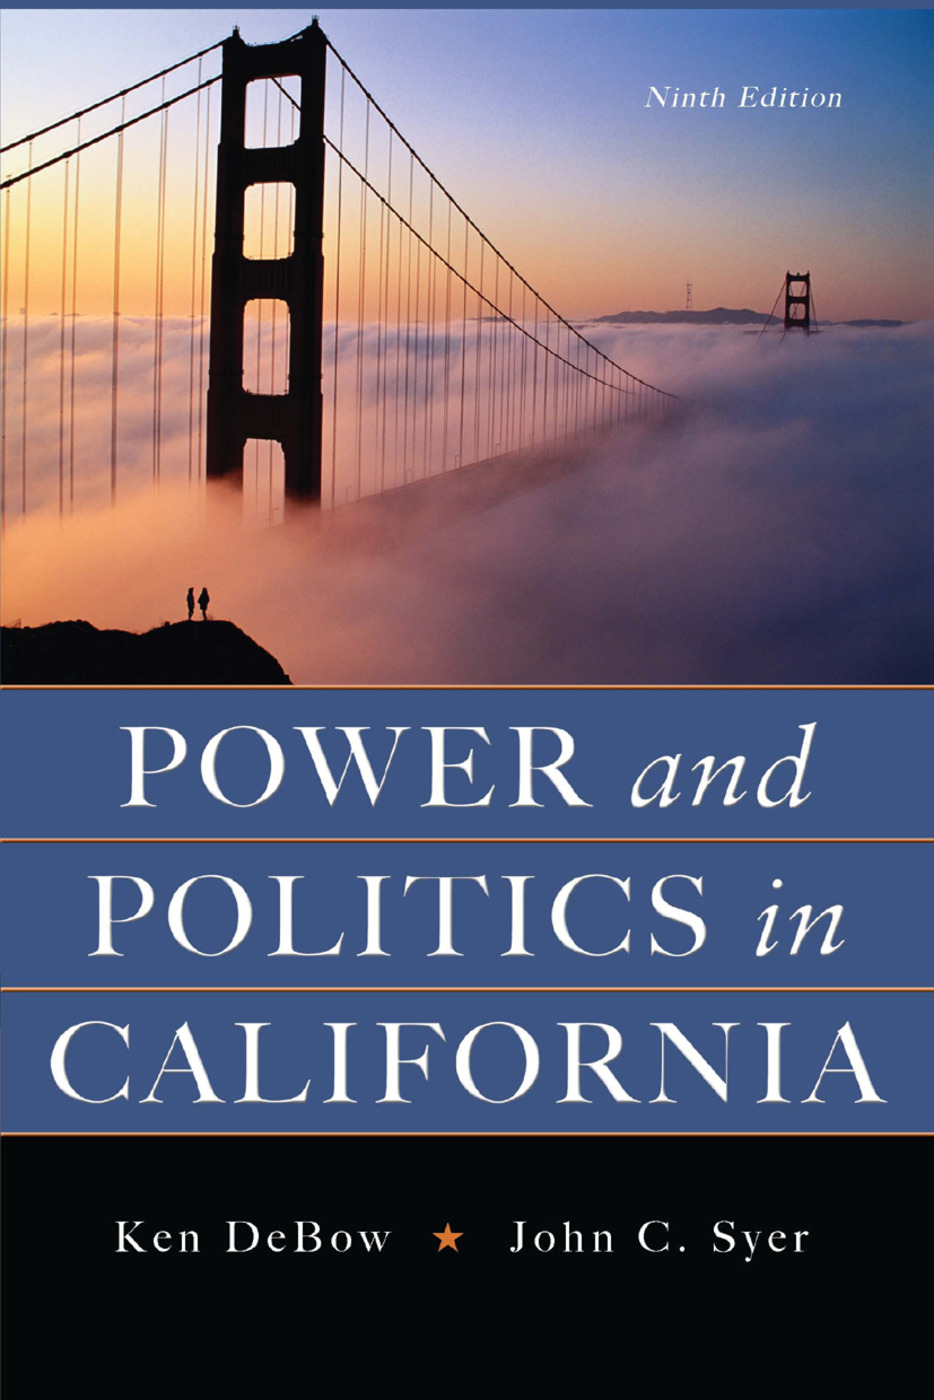 Power and Politics in California